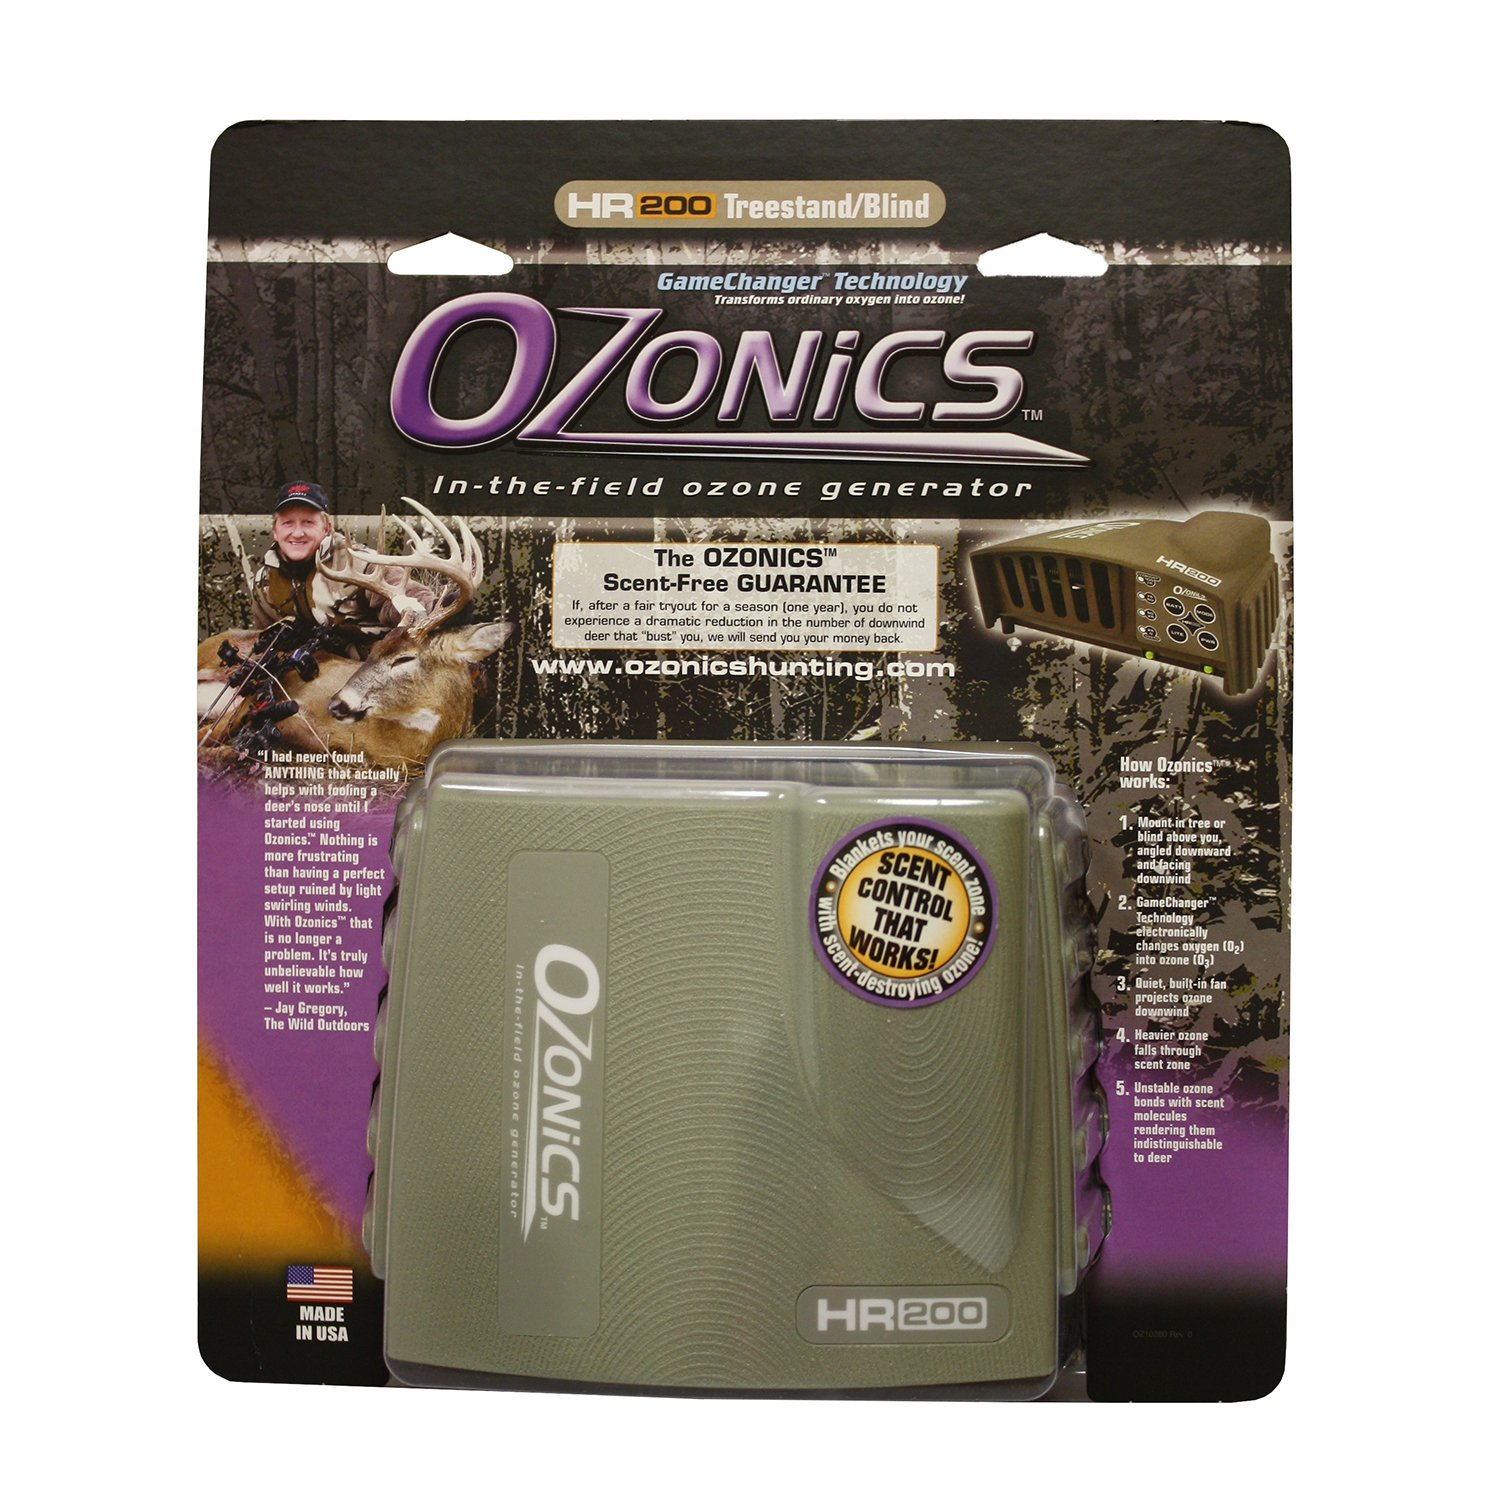 Ozonics HR-200 Electronic Scent Eliminator by Ozonics